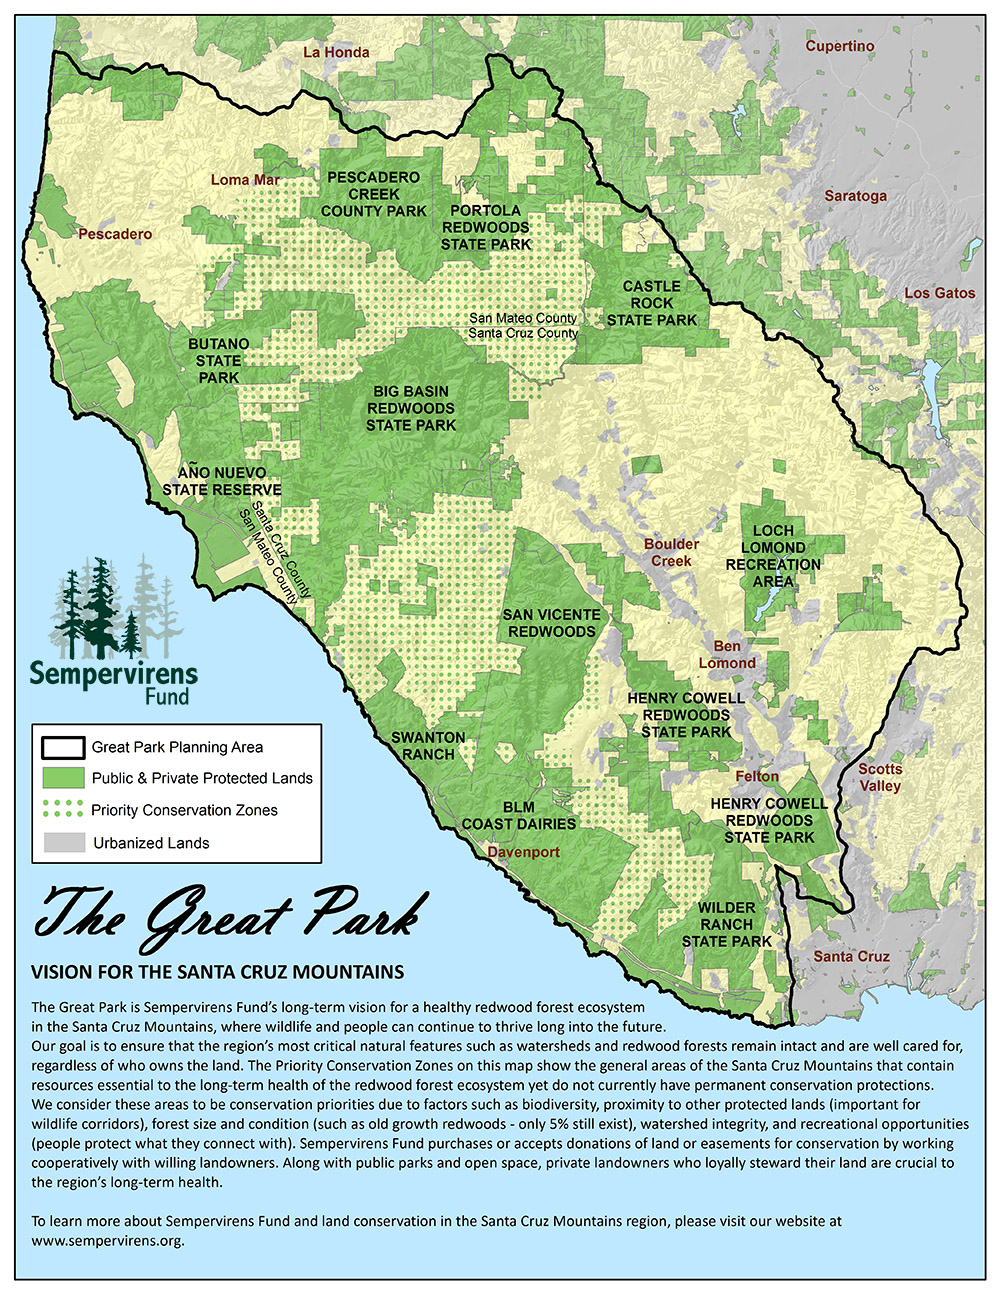 Svf Great Park Map Rev Px Map With Image Redwood Trees California - Where Is The Redwood Forest In California On A Map